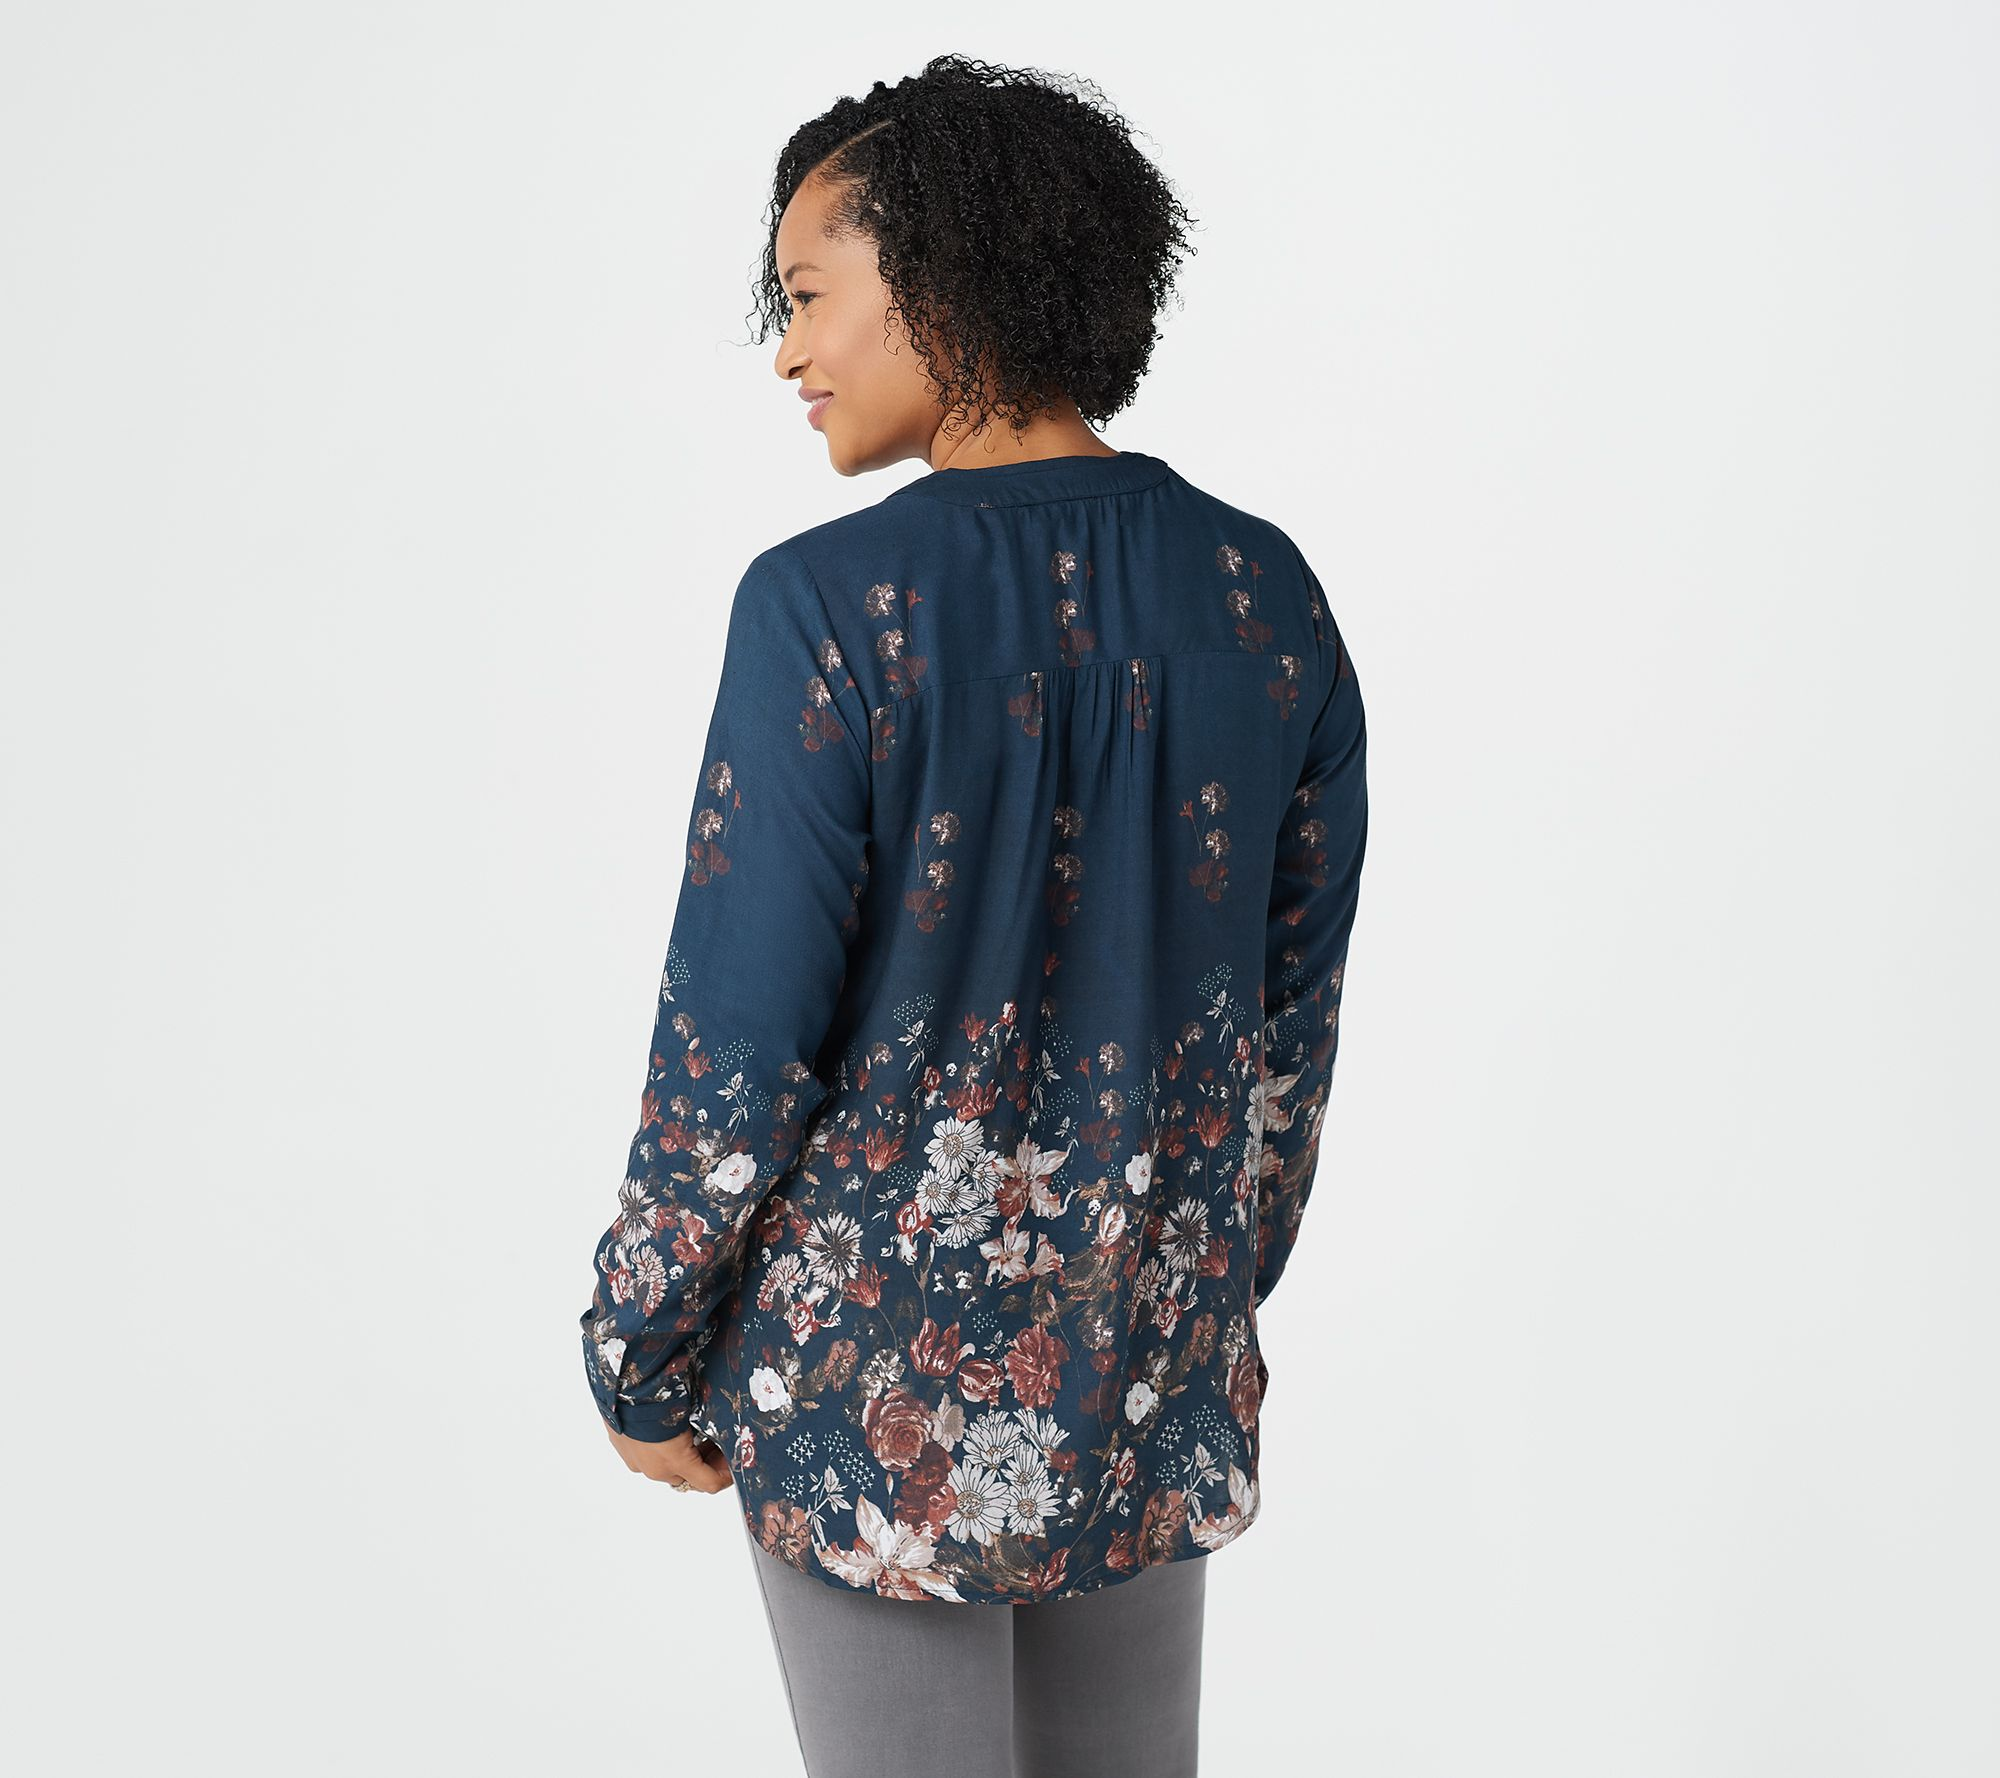 Online works cited generator